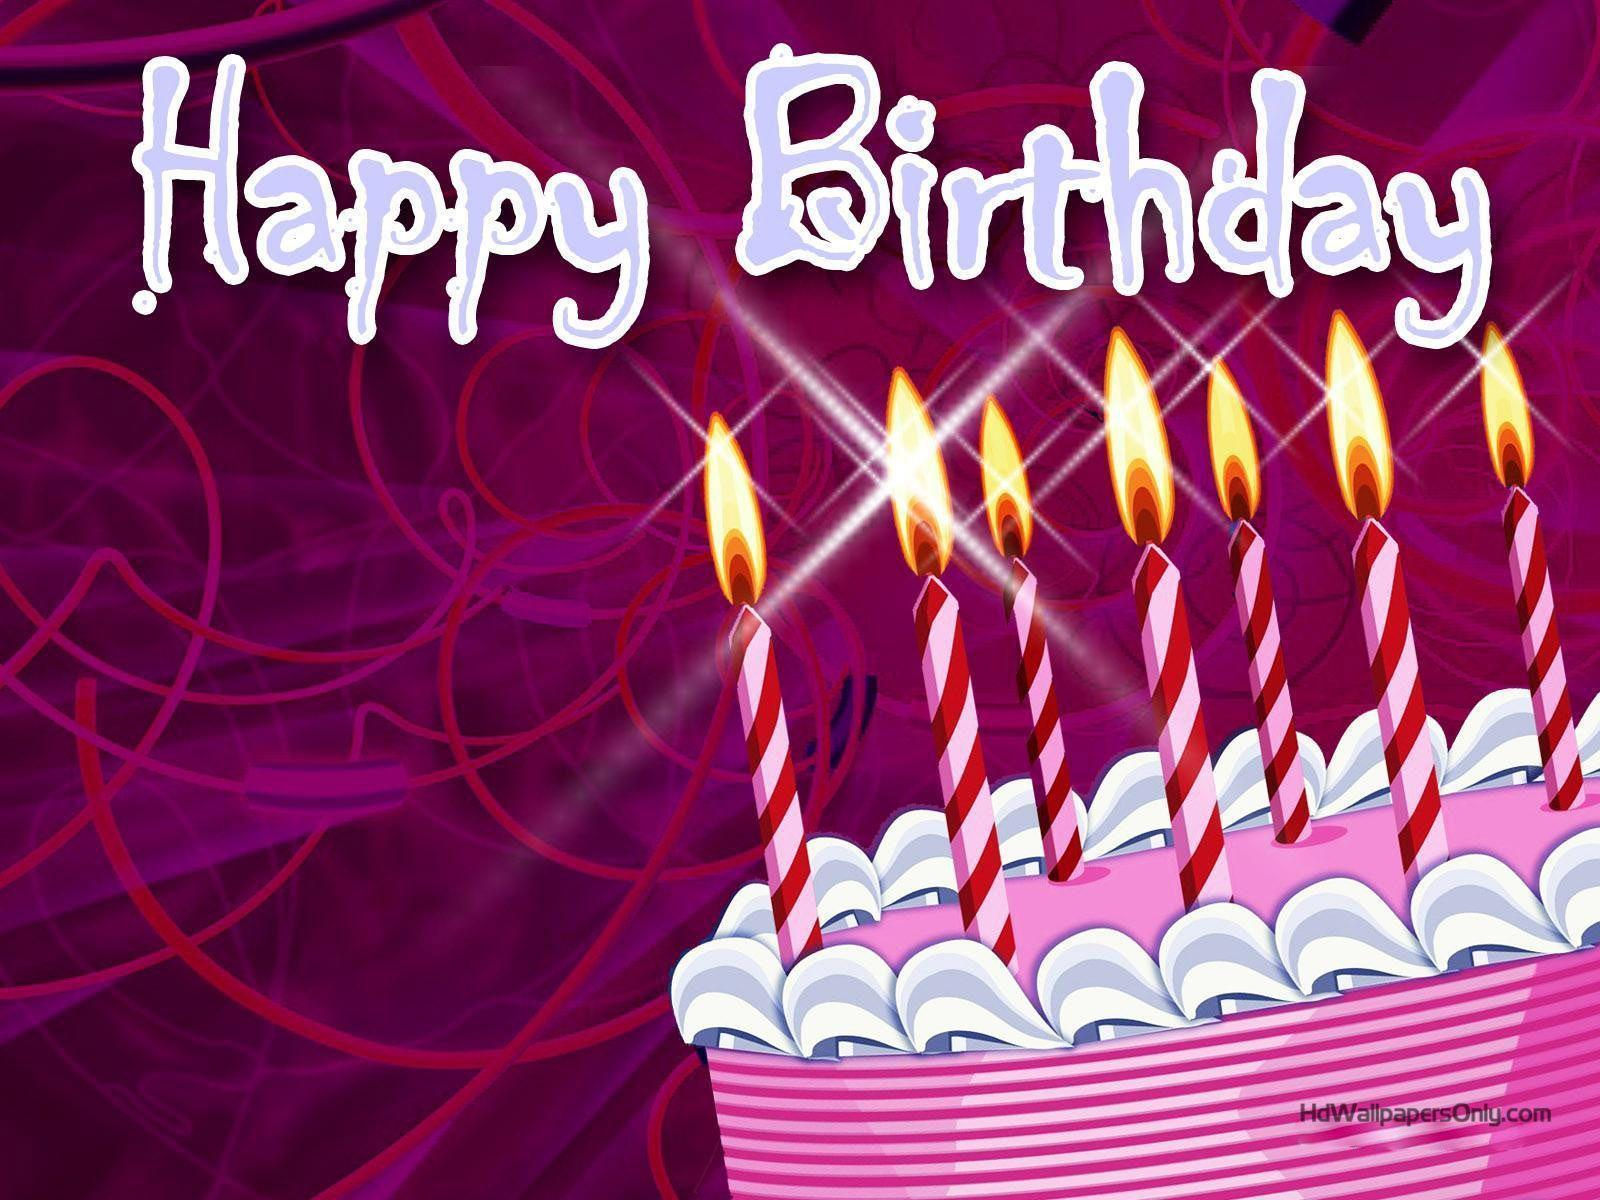 Love Birthday Wishes Wallpaper : Happy Birthday Wallpapers With Name - Wallpaper cave